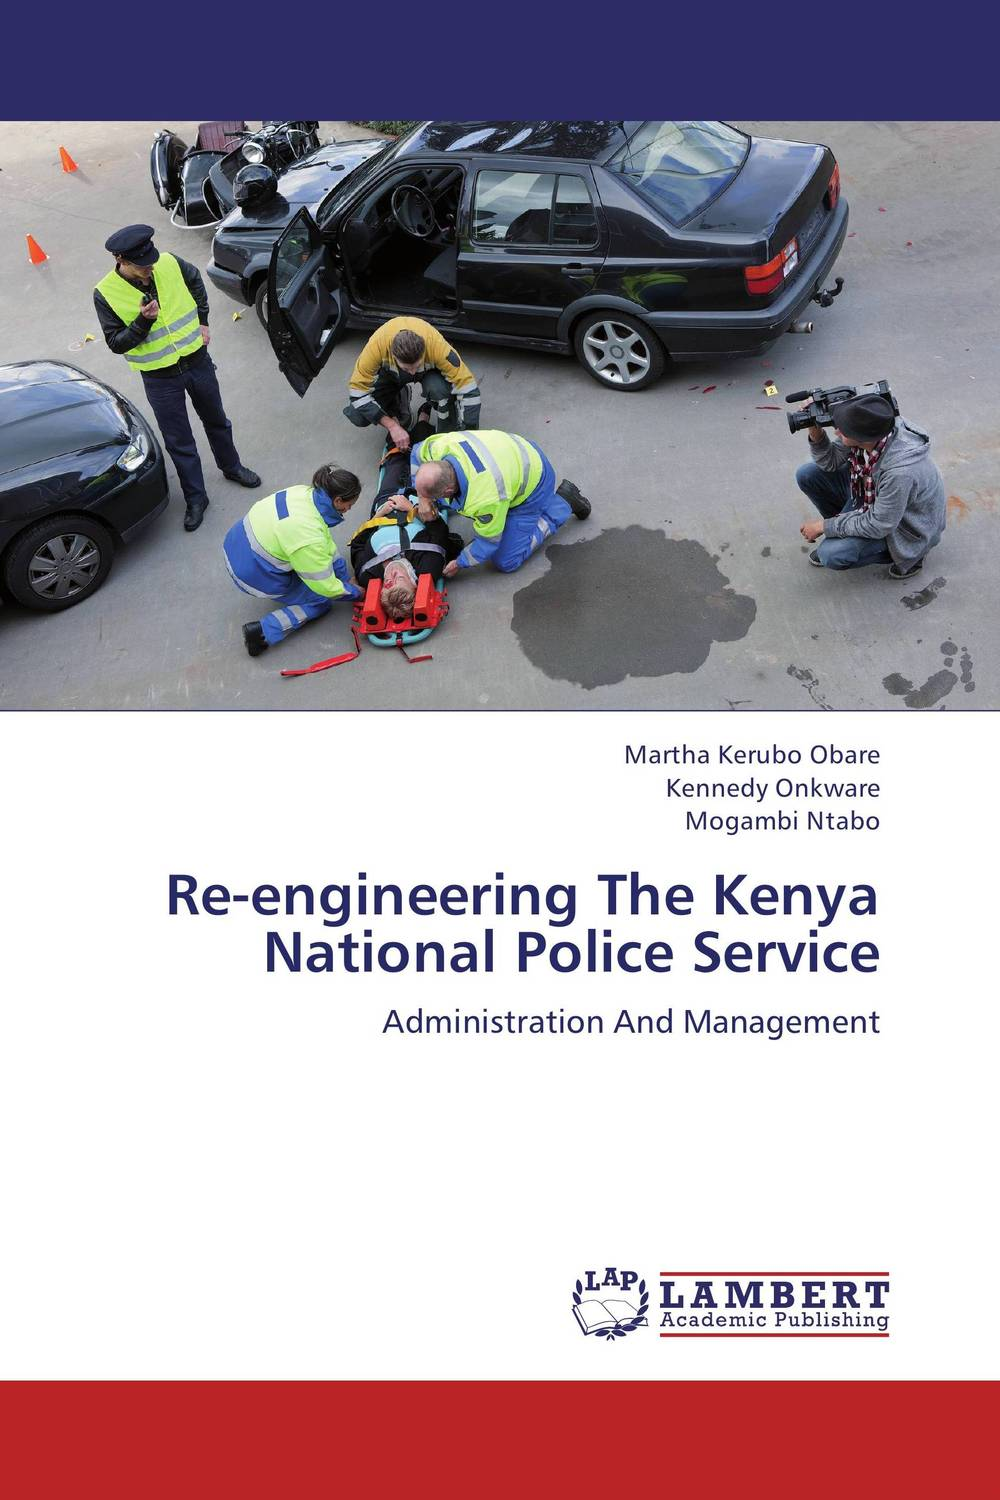 Re-engineering The Kenya National Police Service denny rose 66drg61018 denny rose